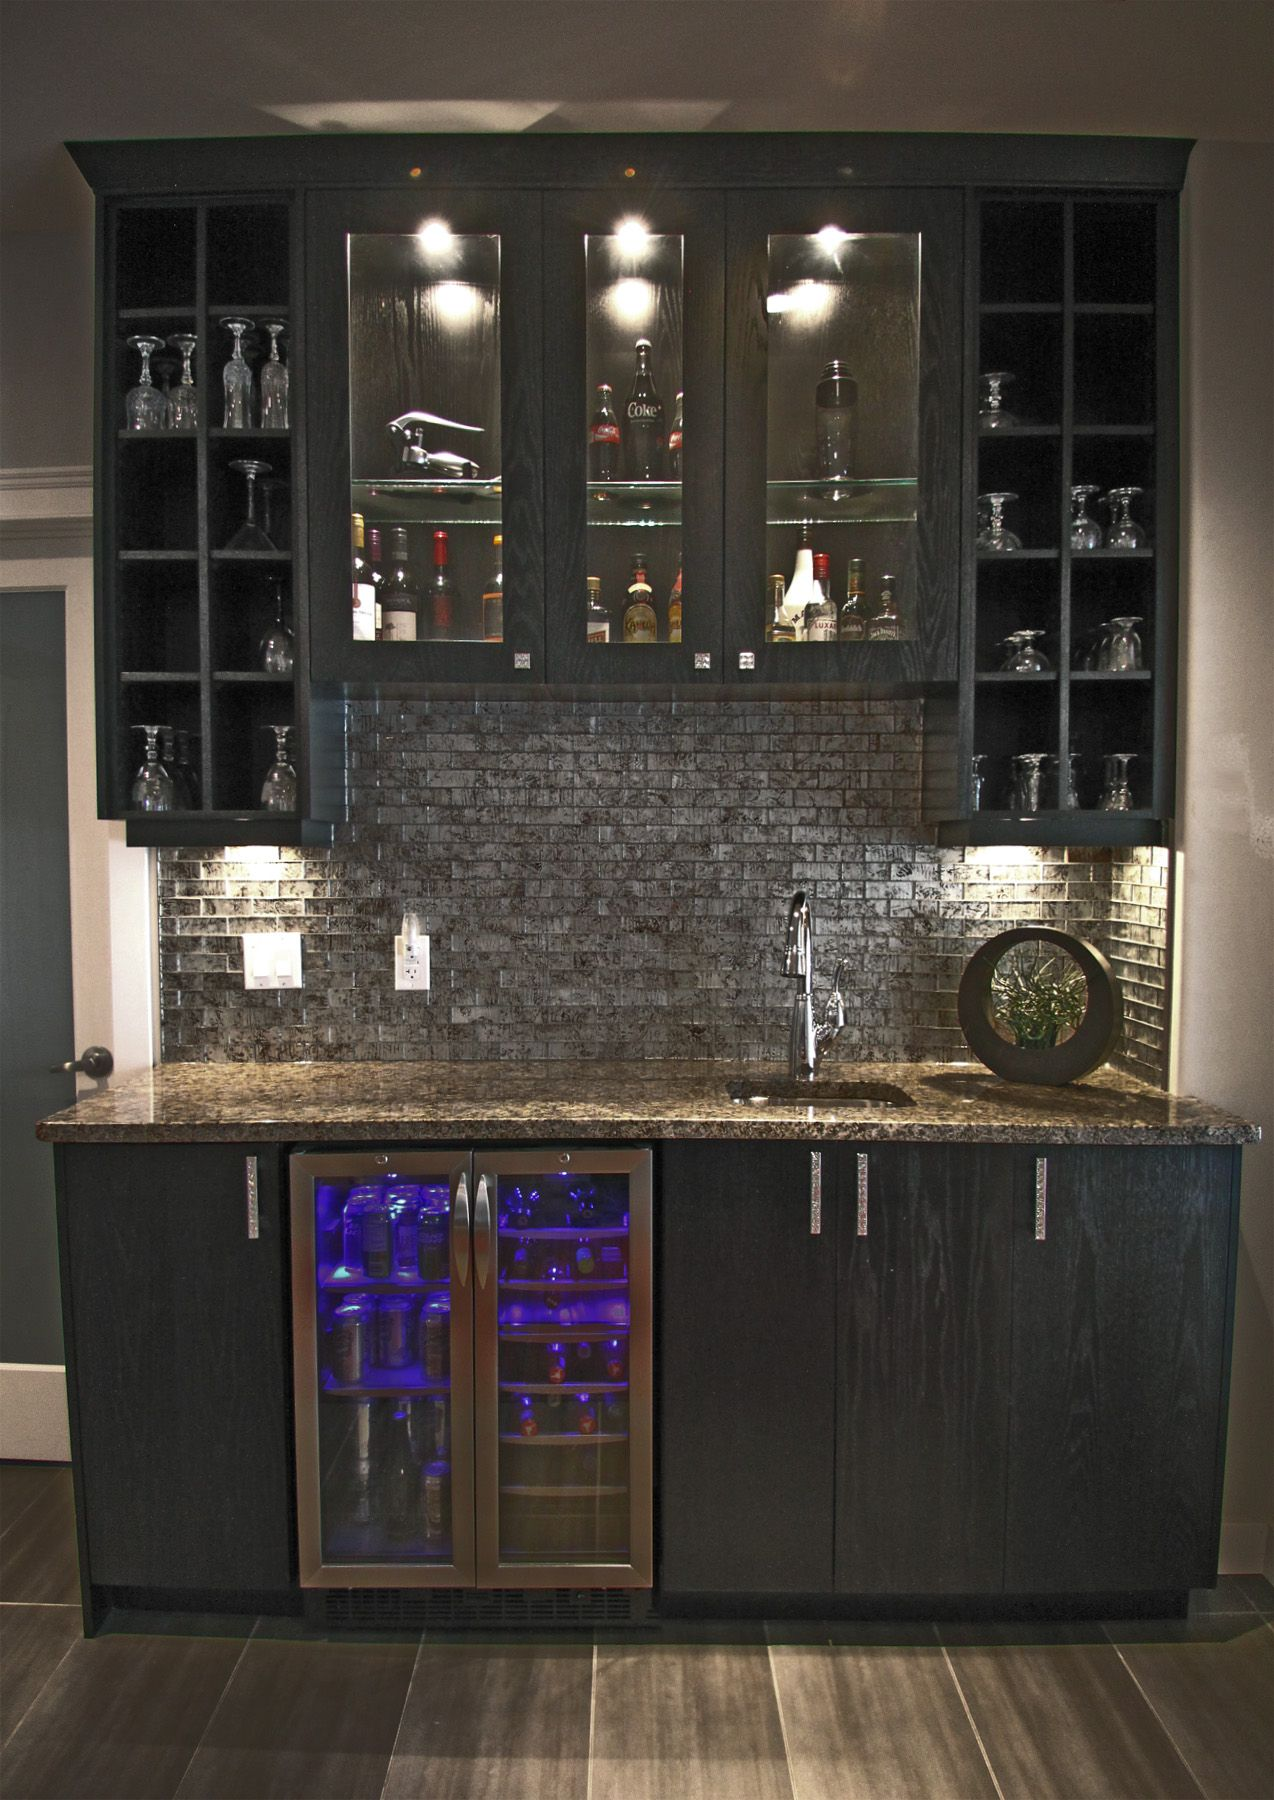 Home wet bar design w glass backsplash decoración hogar